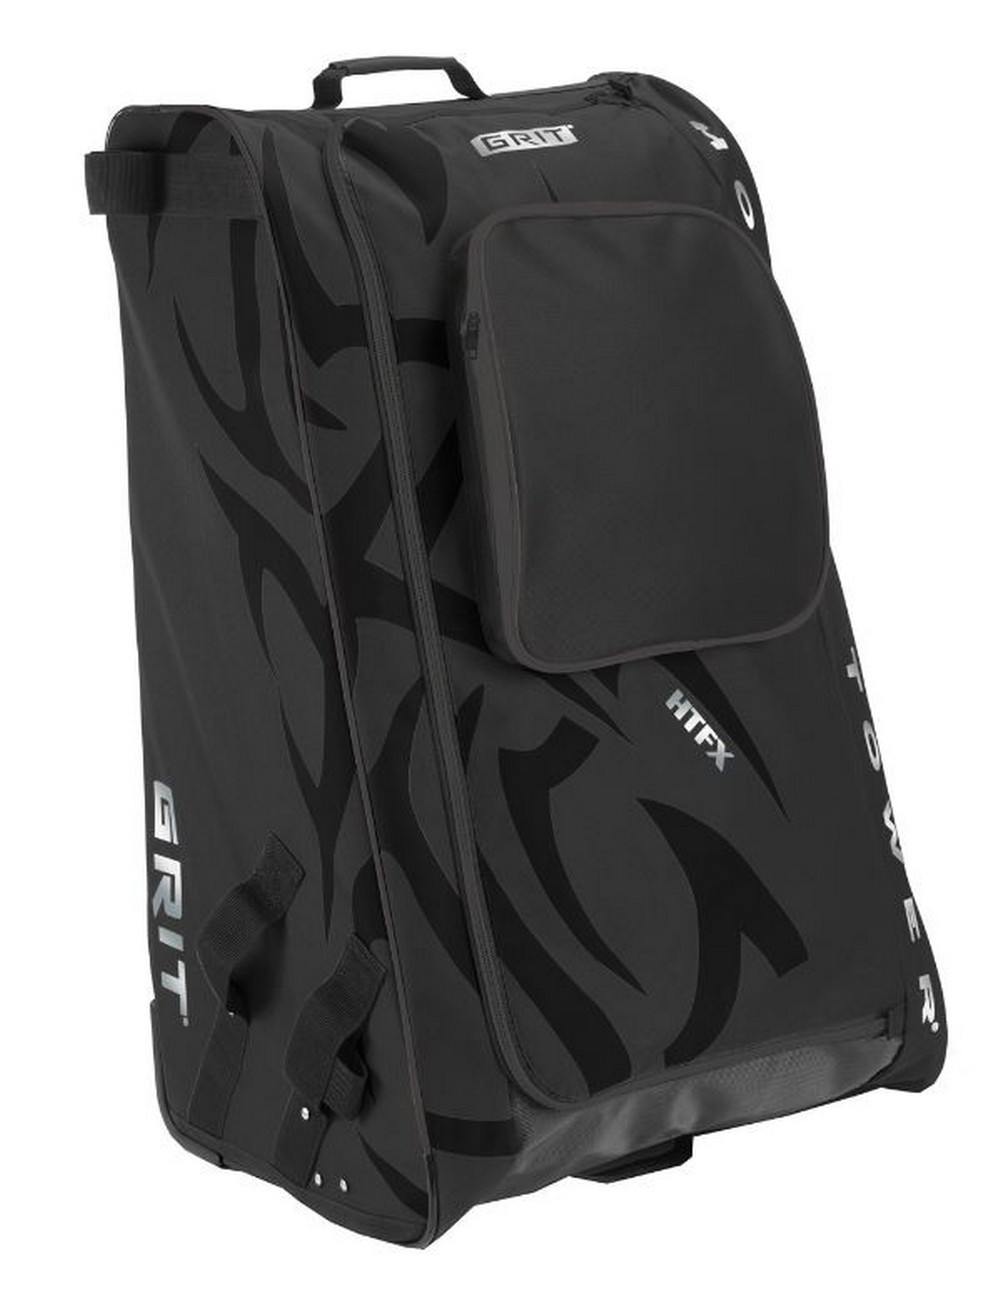 "Grit Inc HTFX Hockey Tower 33"" Wheeled Equipment Bag Black HTFX033-B (Black) by Grit Inc."